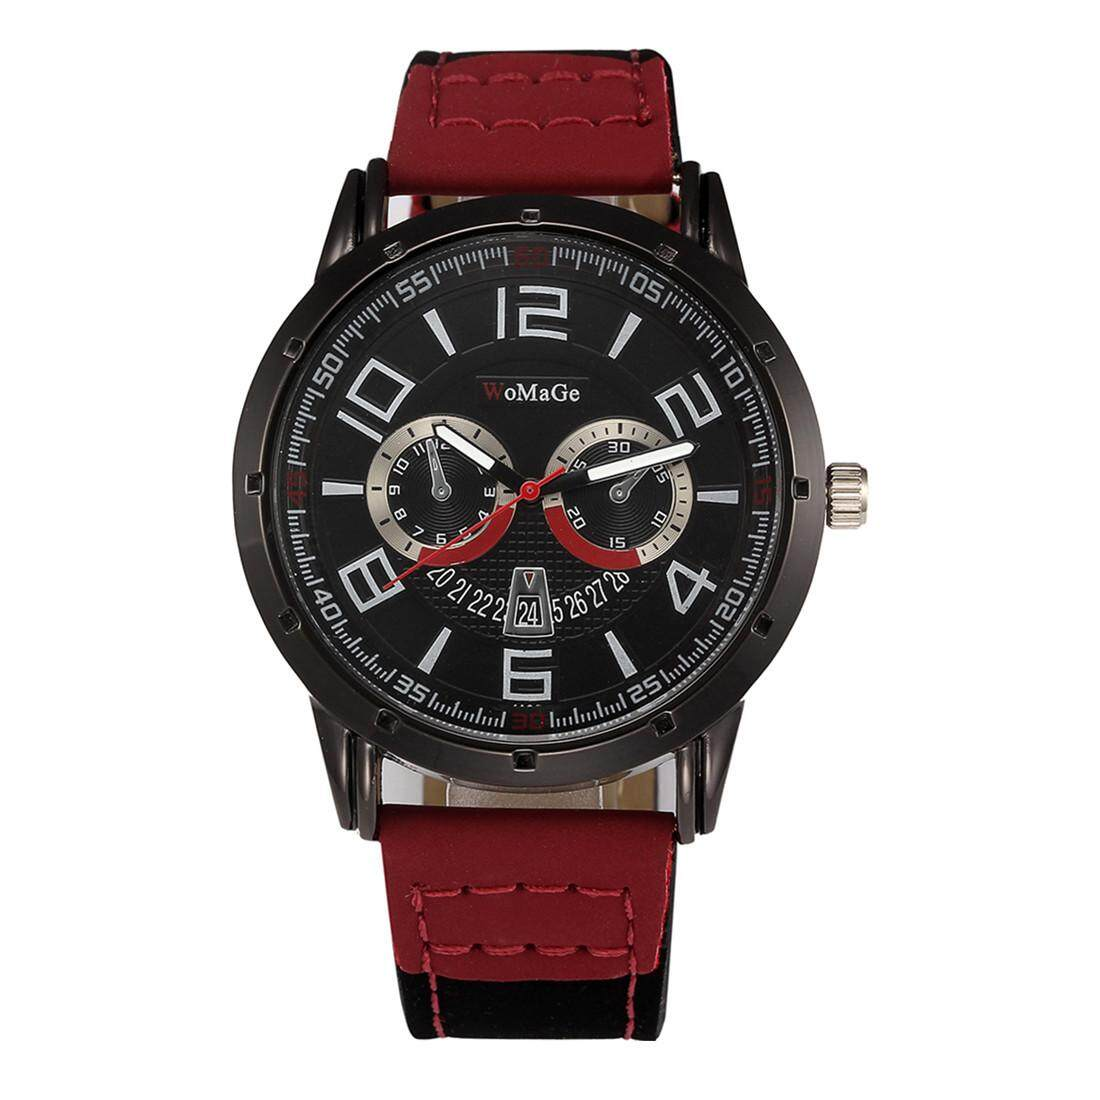 WoMaGe Male Ladies General Fashion Fake Two Eyes Red Second Hand Quartz Watch Red Belt Black